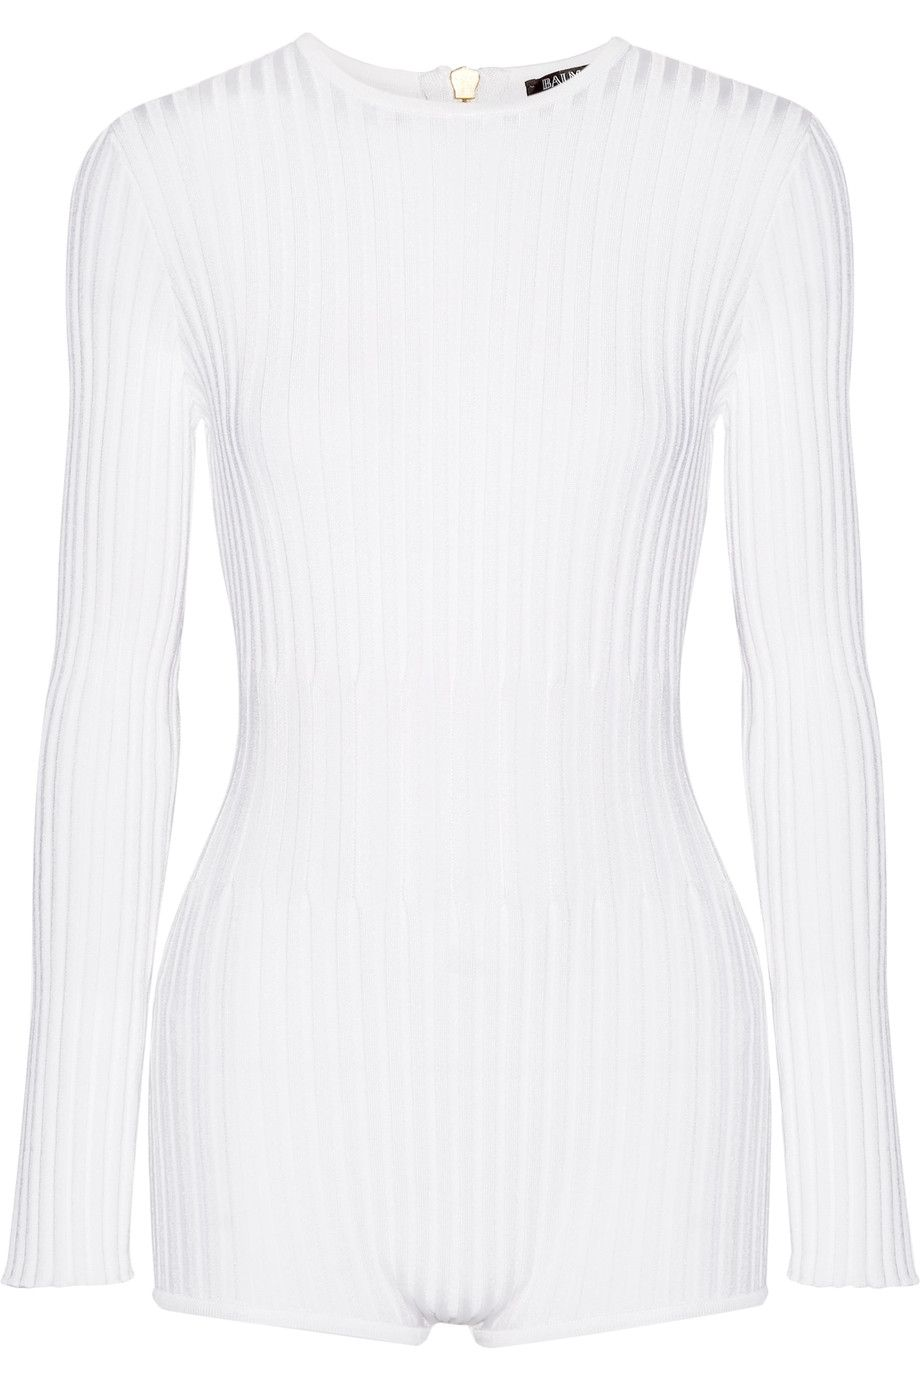 41b41f77207 BALMAIN Ribbed stretch-knit bodysuit.  balmain  cloth  bodysuit ...